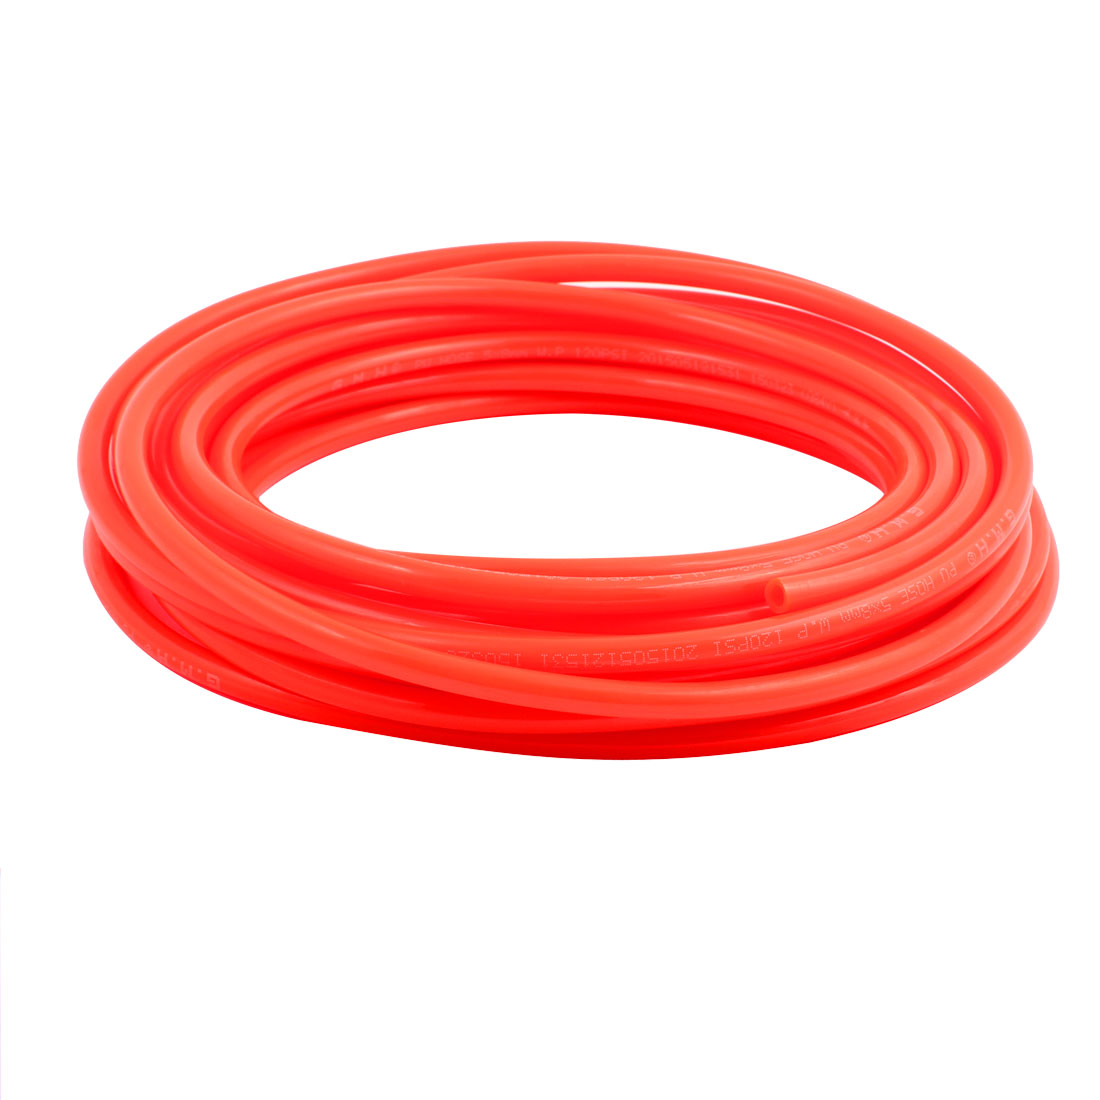 5mm x 8mm Flexible Pneumatic Polyurethane PU Hose Pipe Tube Orange 10m Length